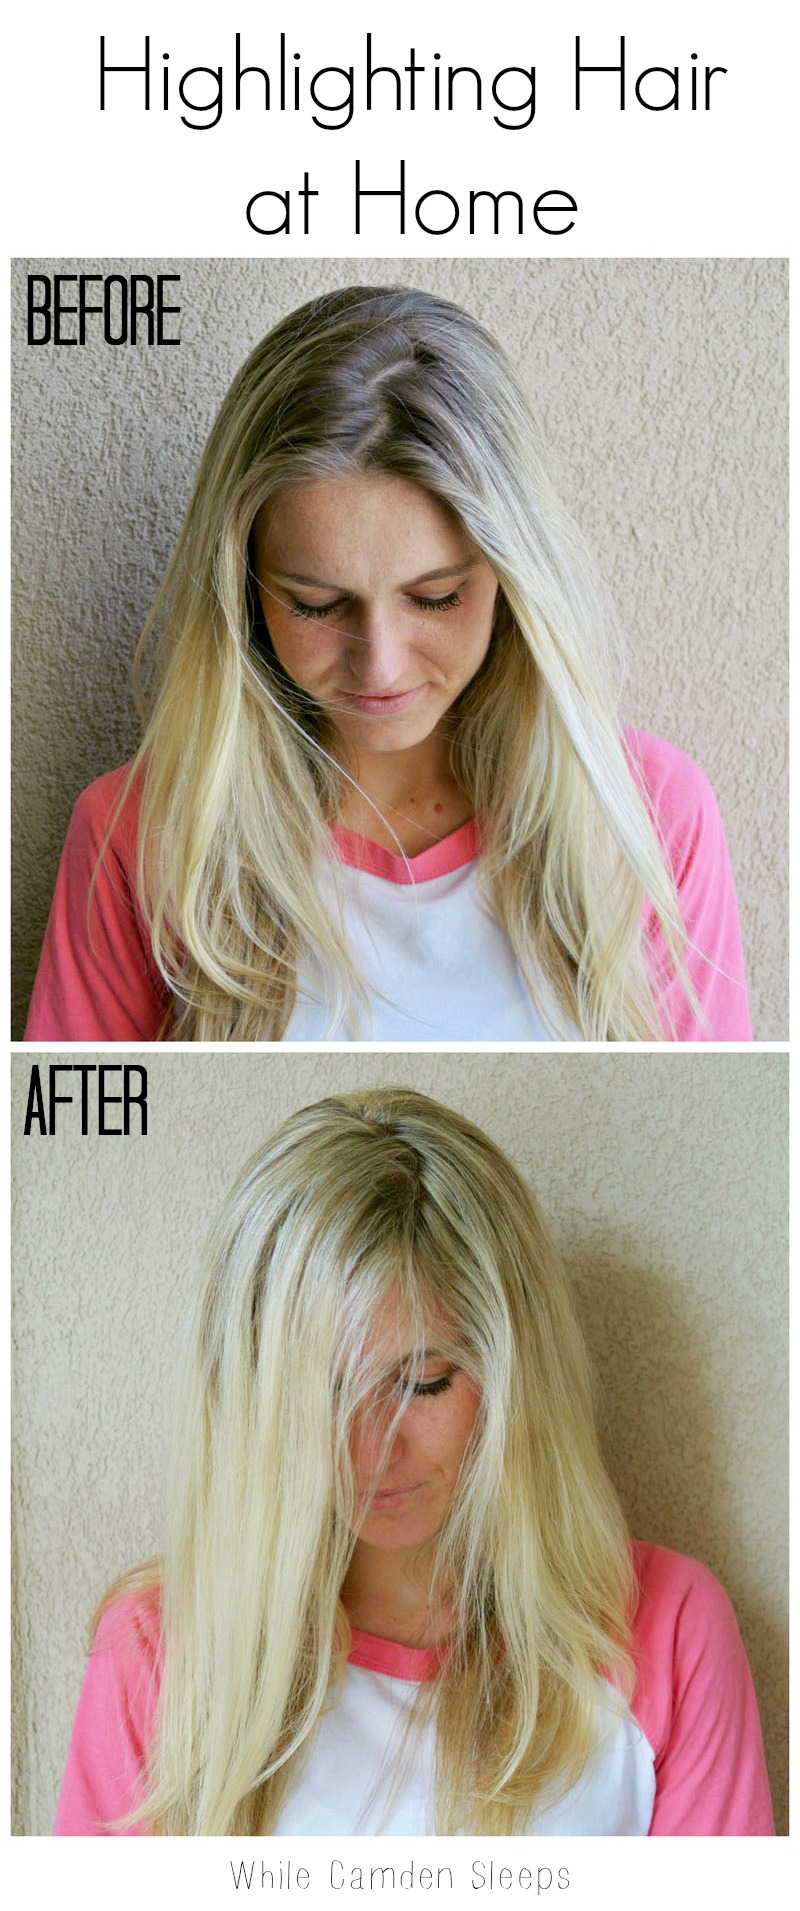 Refashioning….Hair: How to Highlight Hair at Home